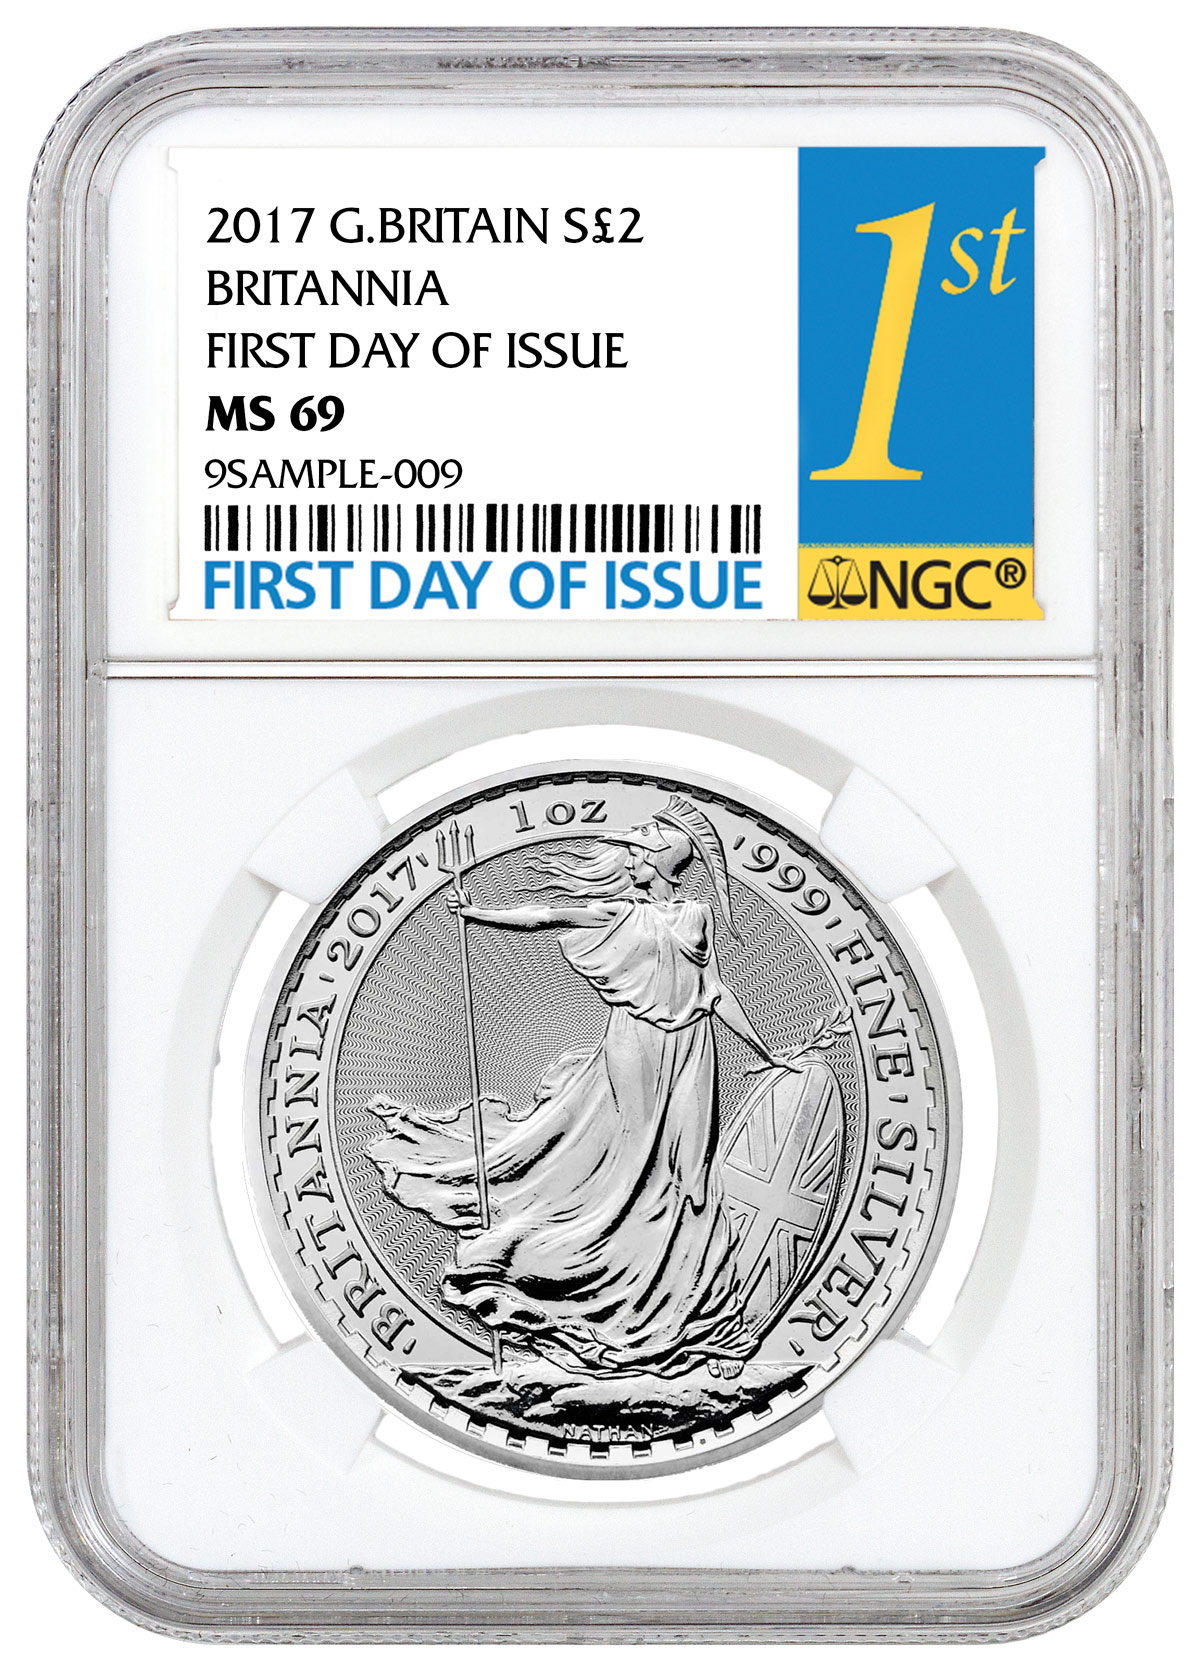 2017 Great Britain 1 oz Silver Britannia - £2 Coin NGC MS69 FDI